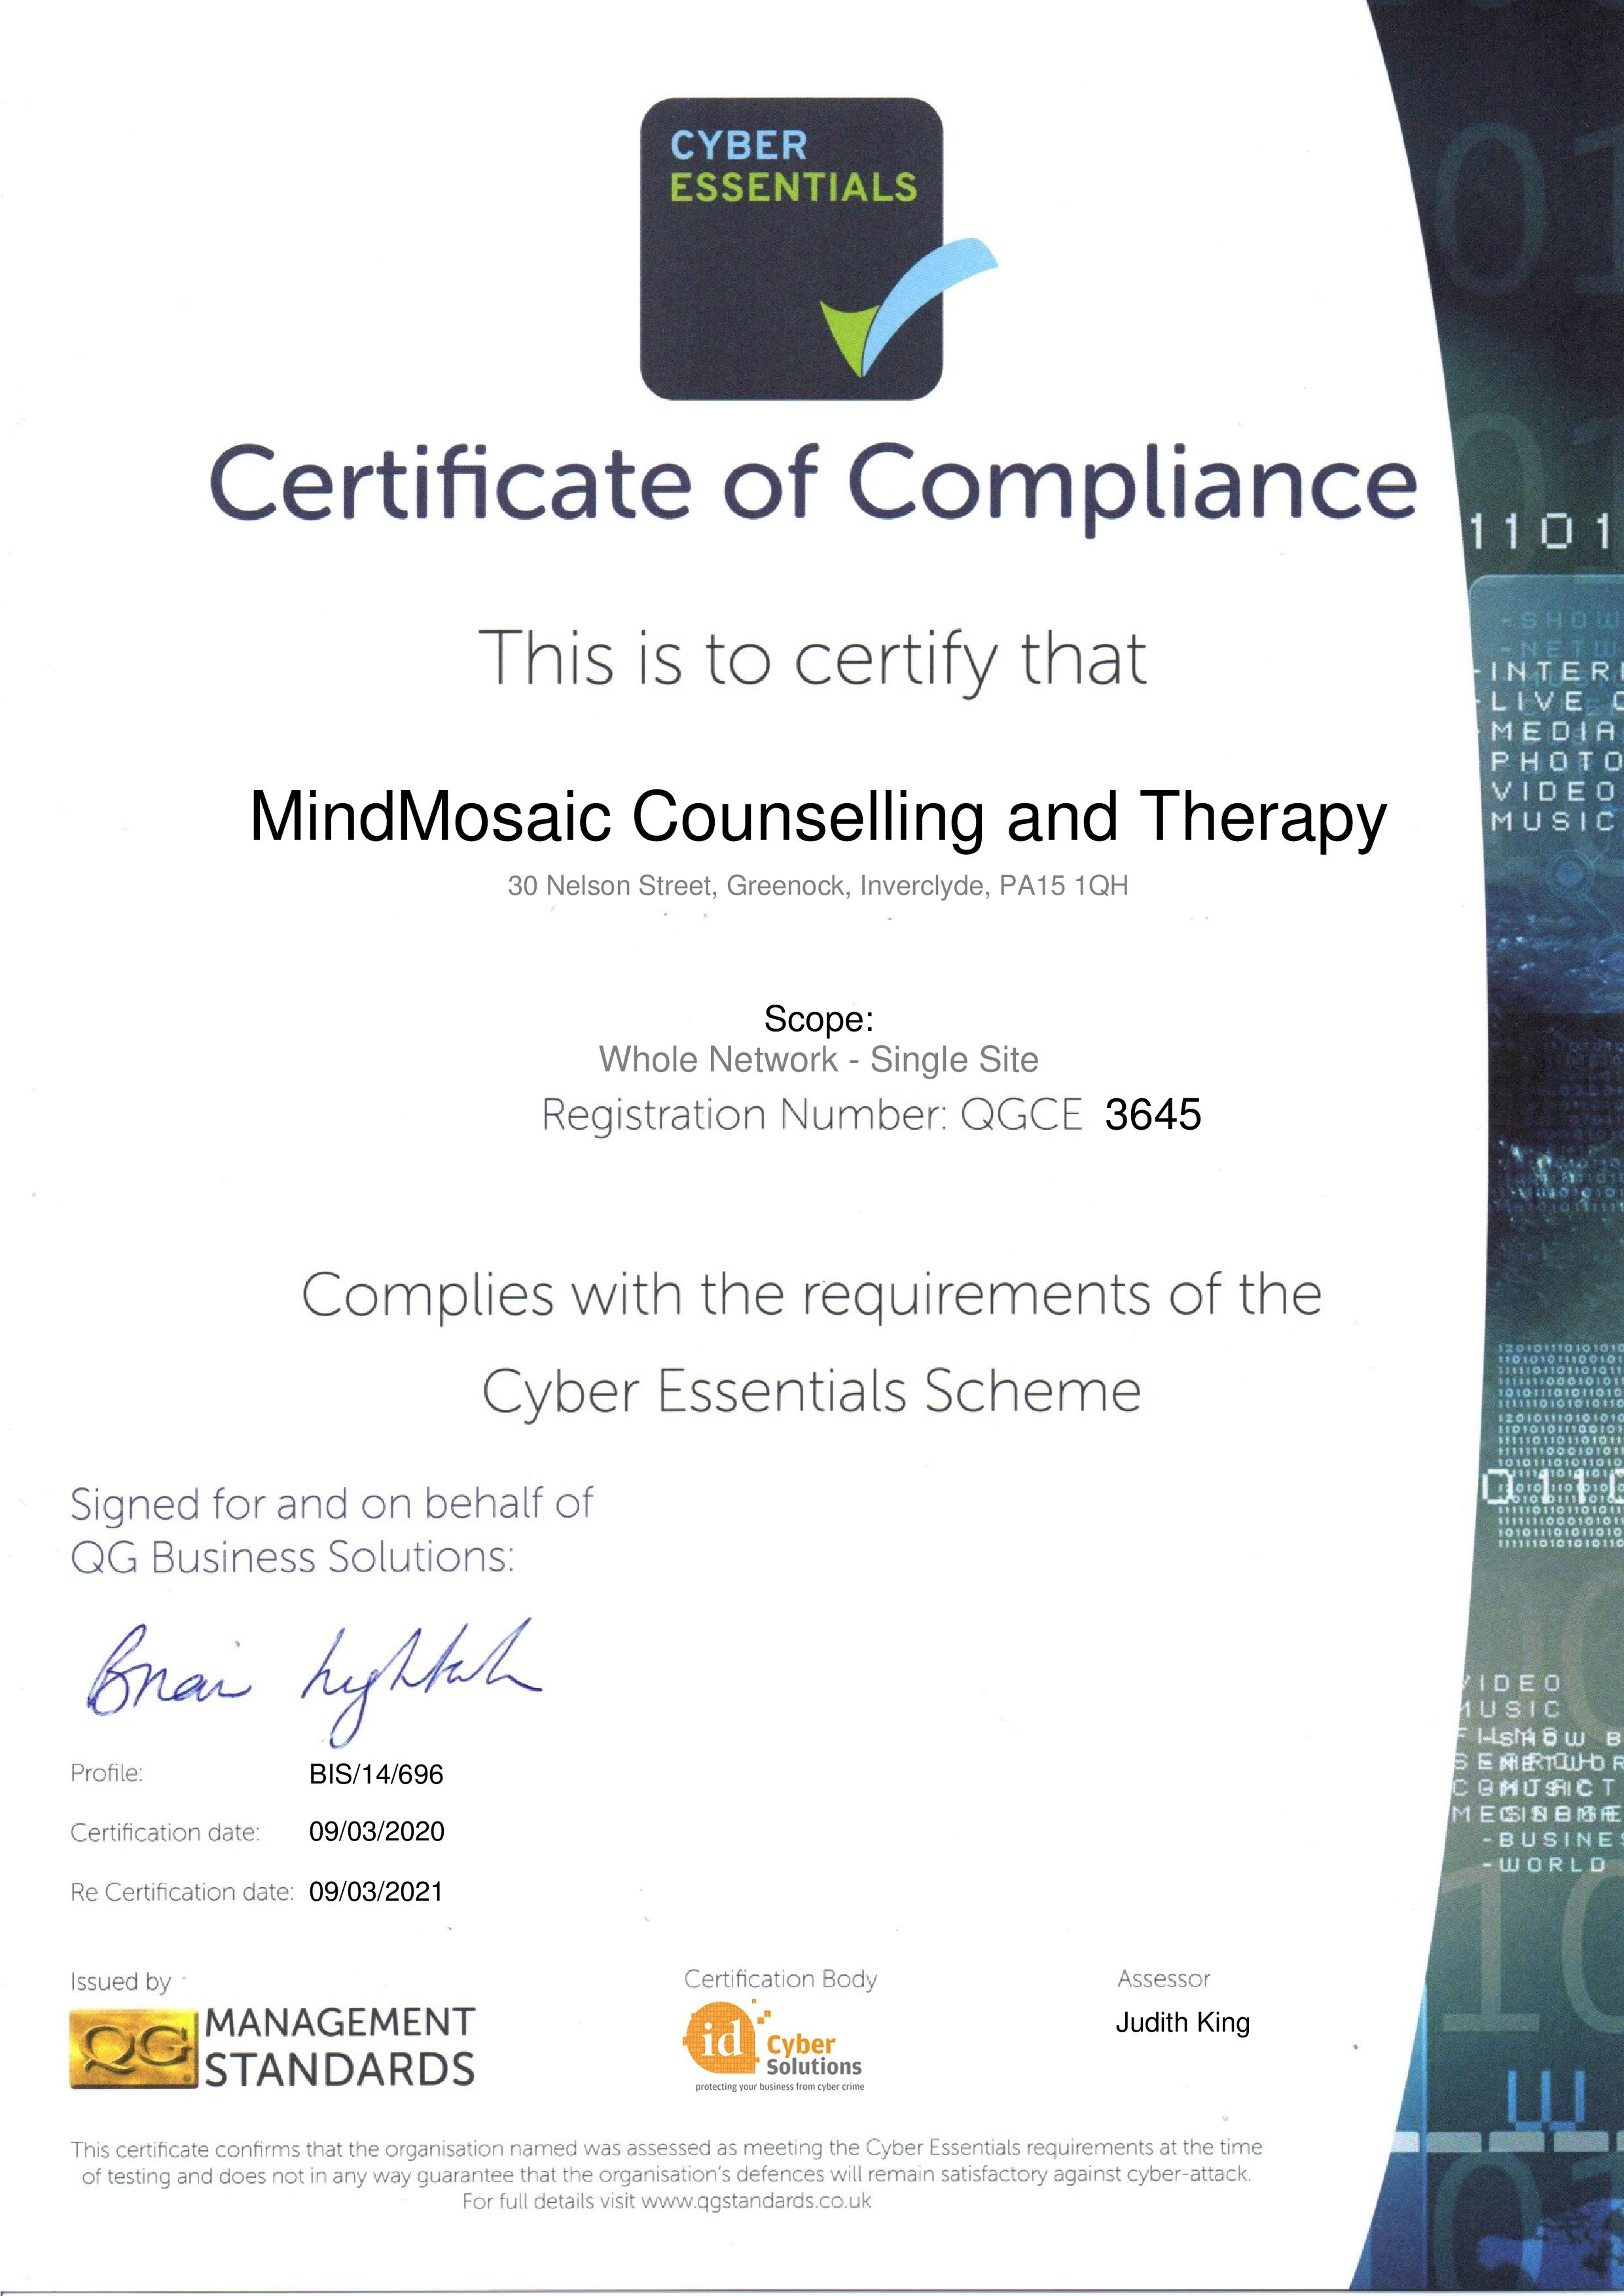 QGCE3645 MindMosaic Counselling and Therapy